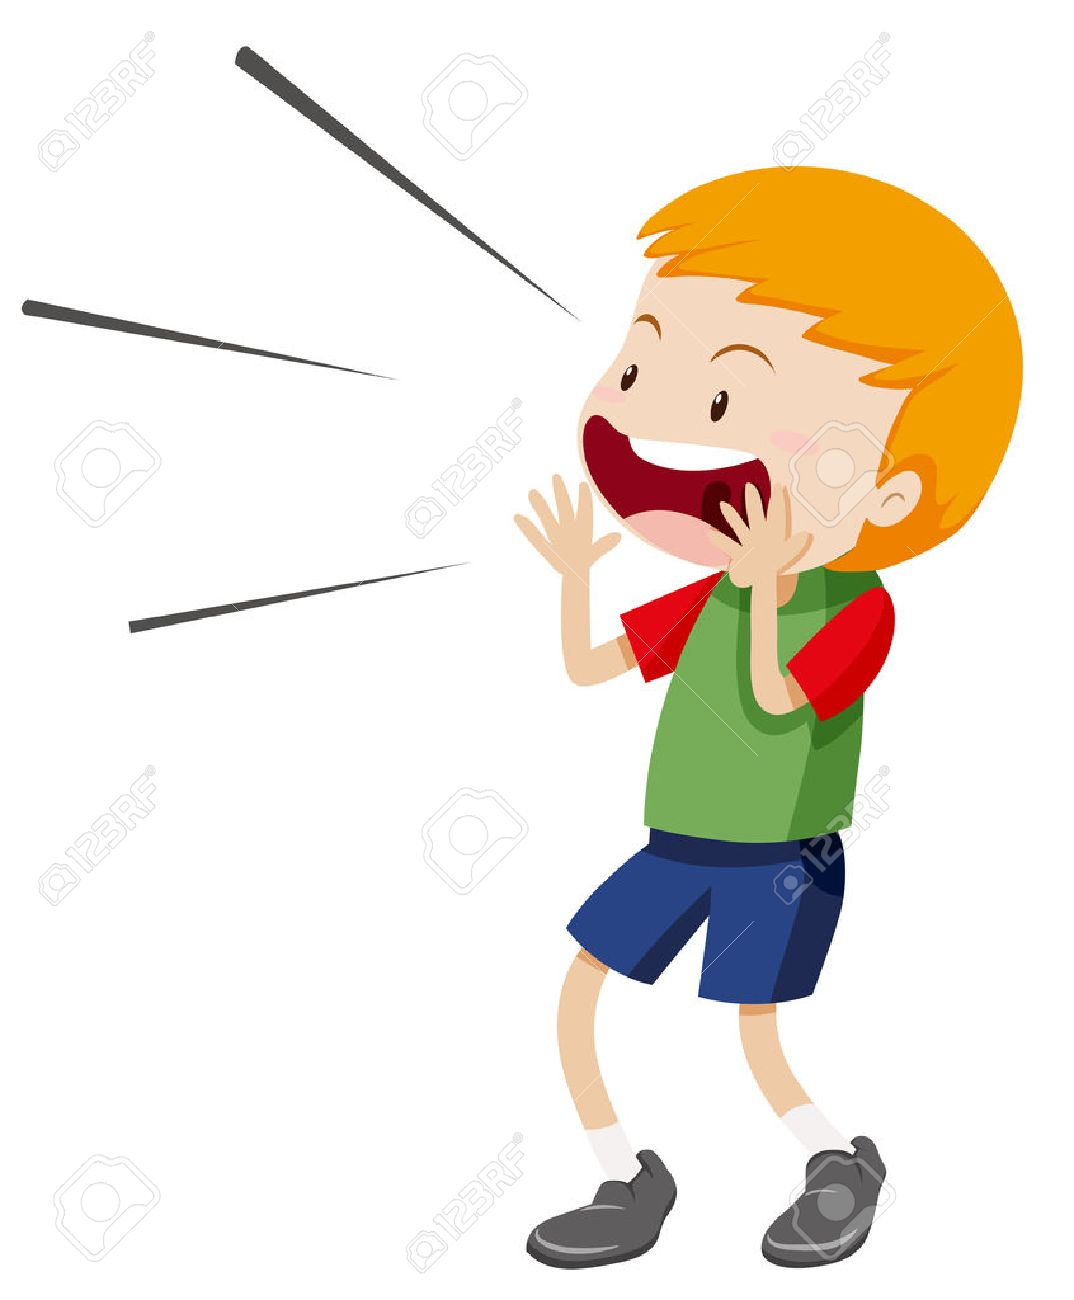 Clipart yelling png free stock Kid yelling clipart 4 » Clipart Station png free stock